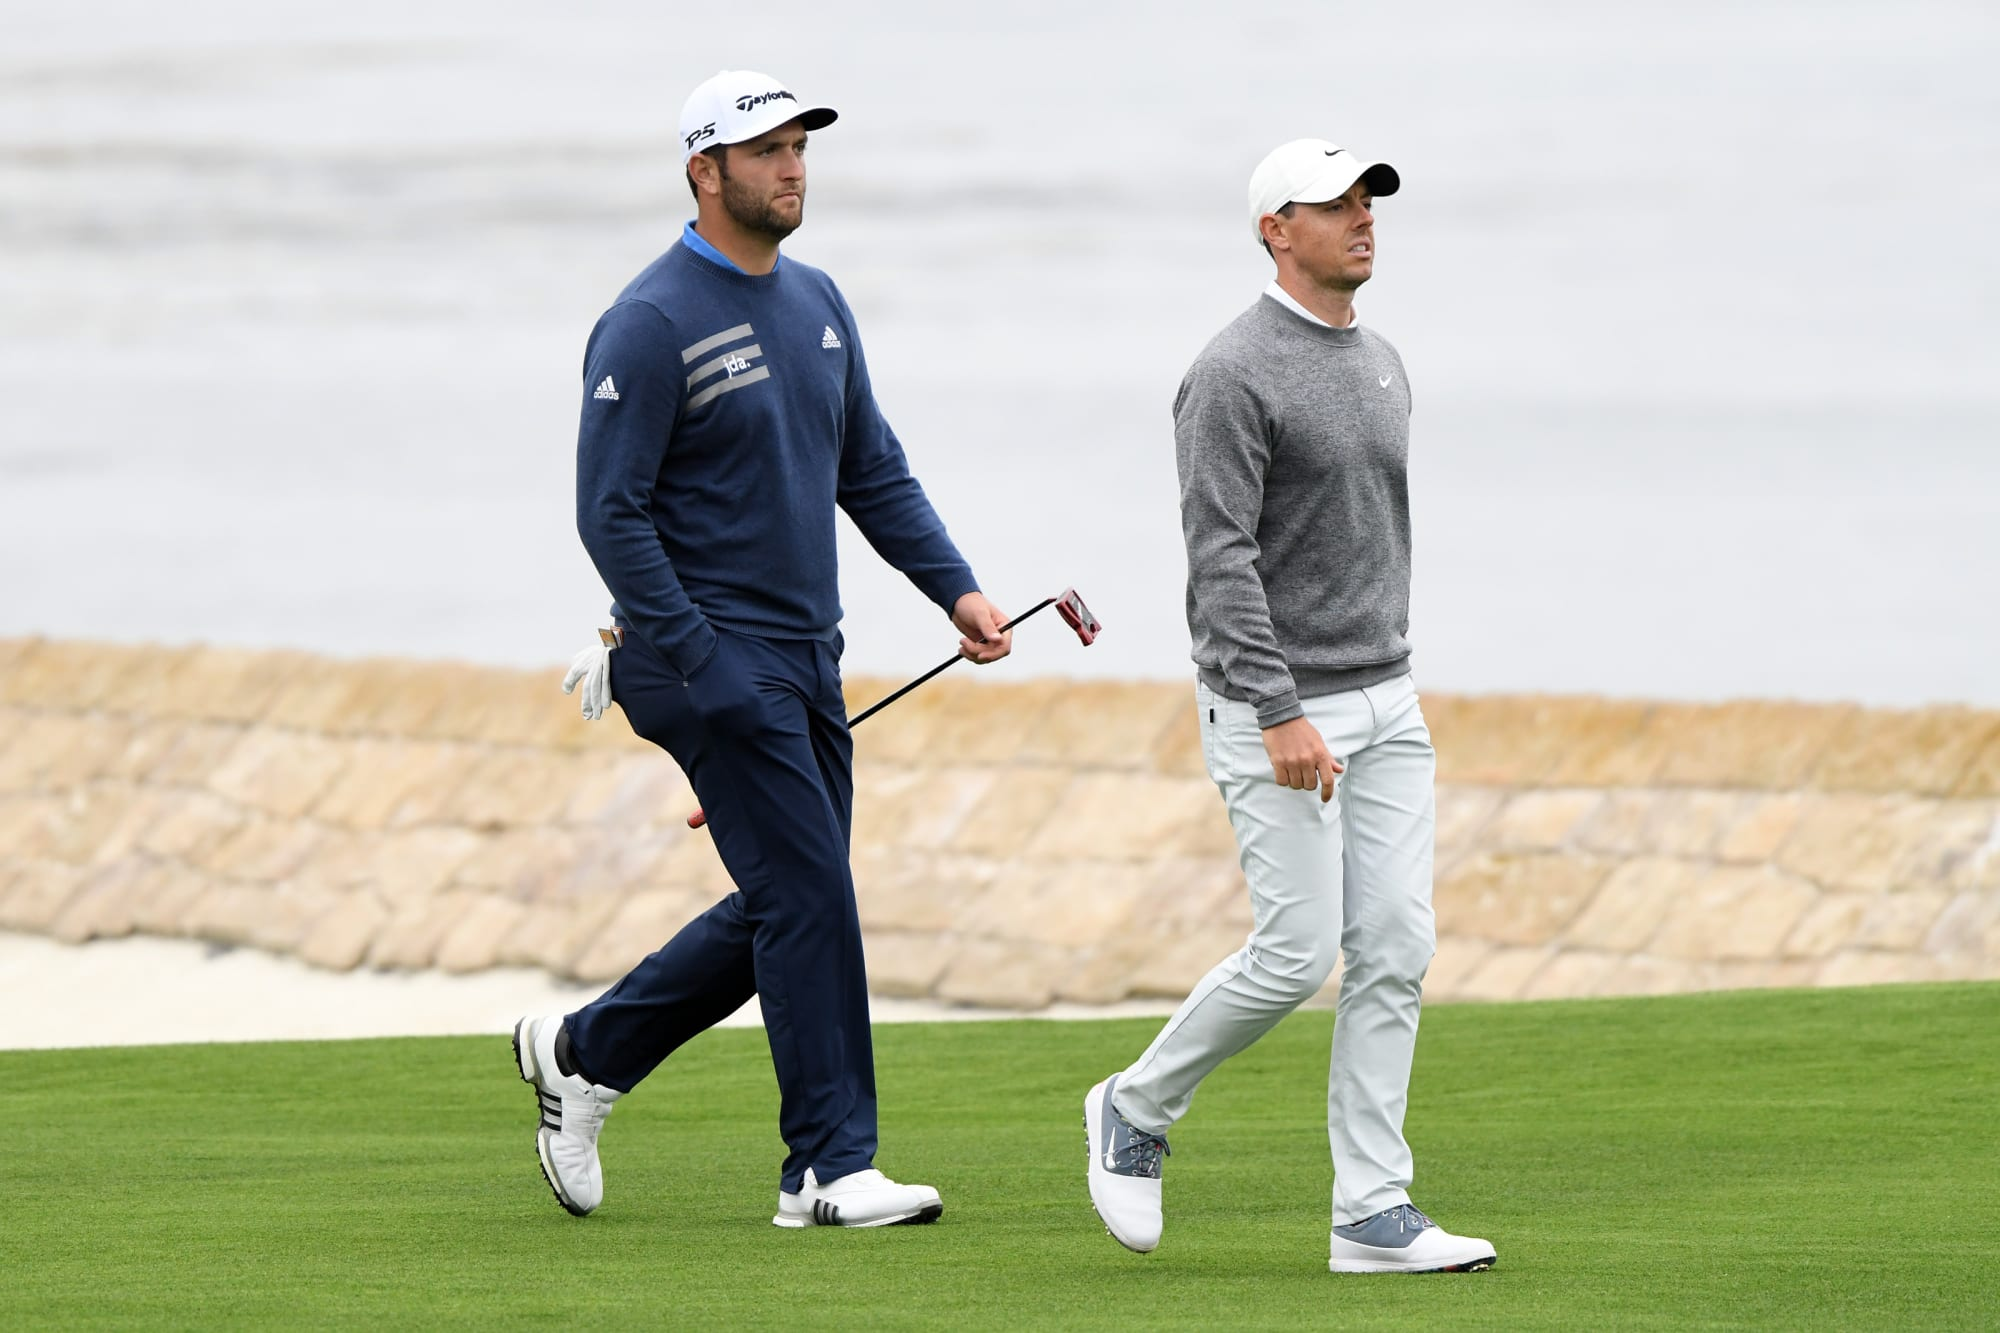 2021 Masters: Featured Groups for Thursday and Friday